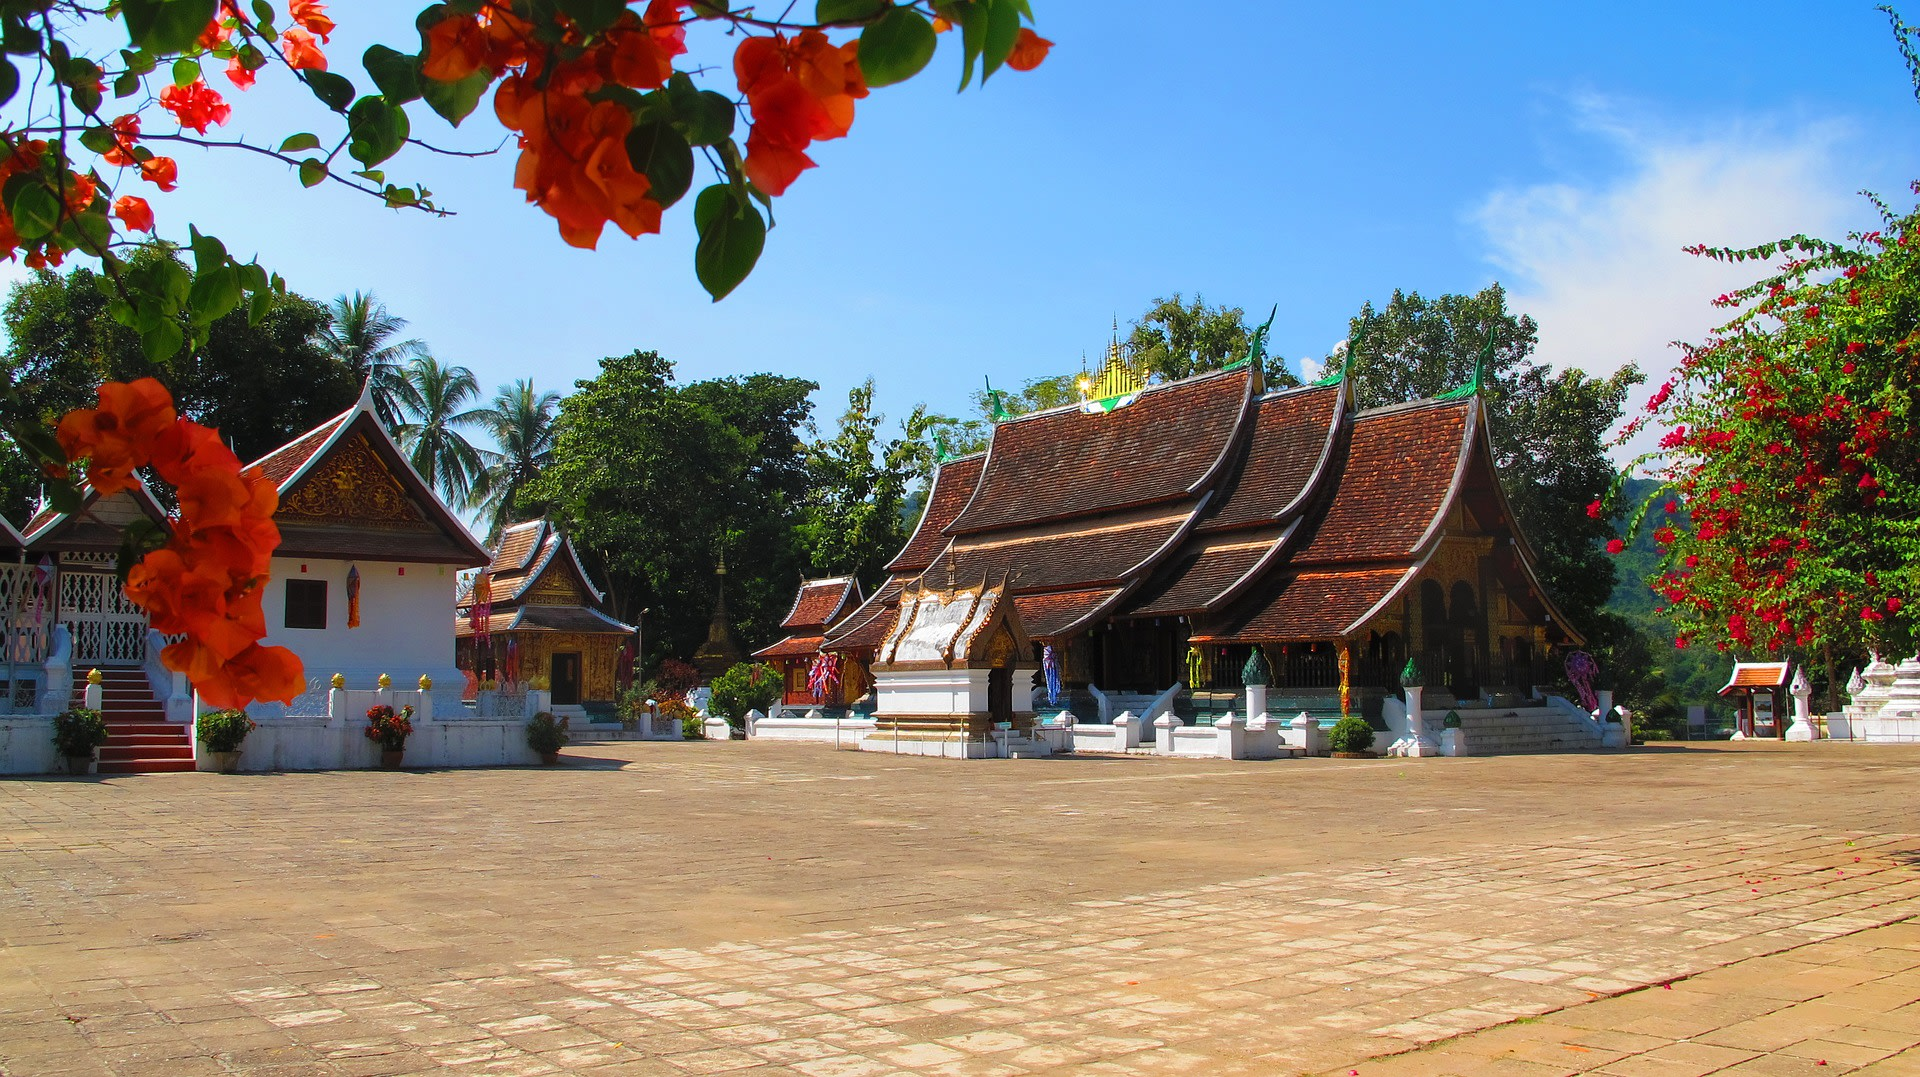 Wat Siphouthabath Temple